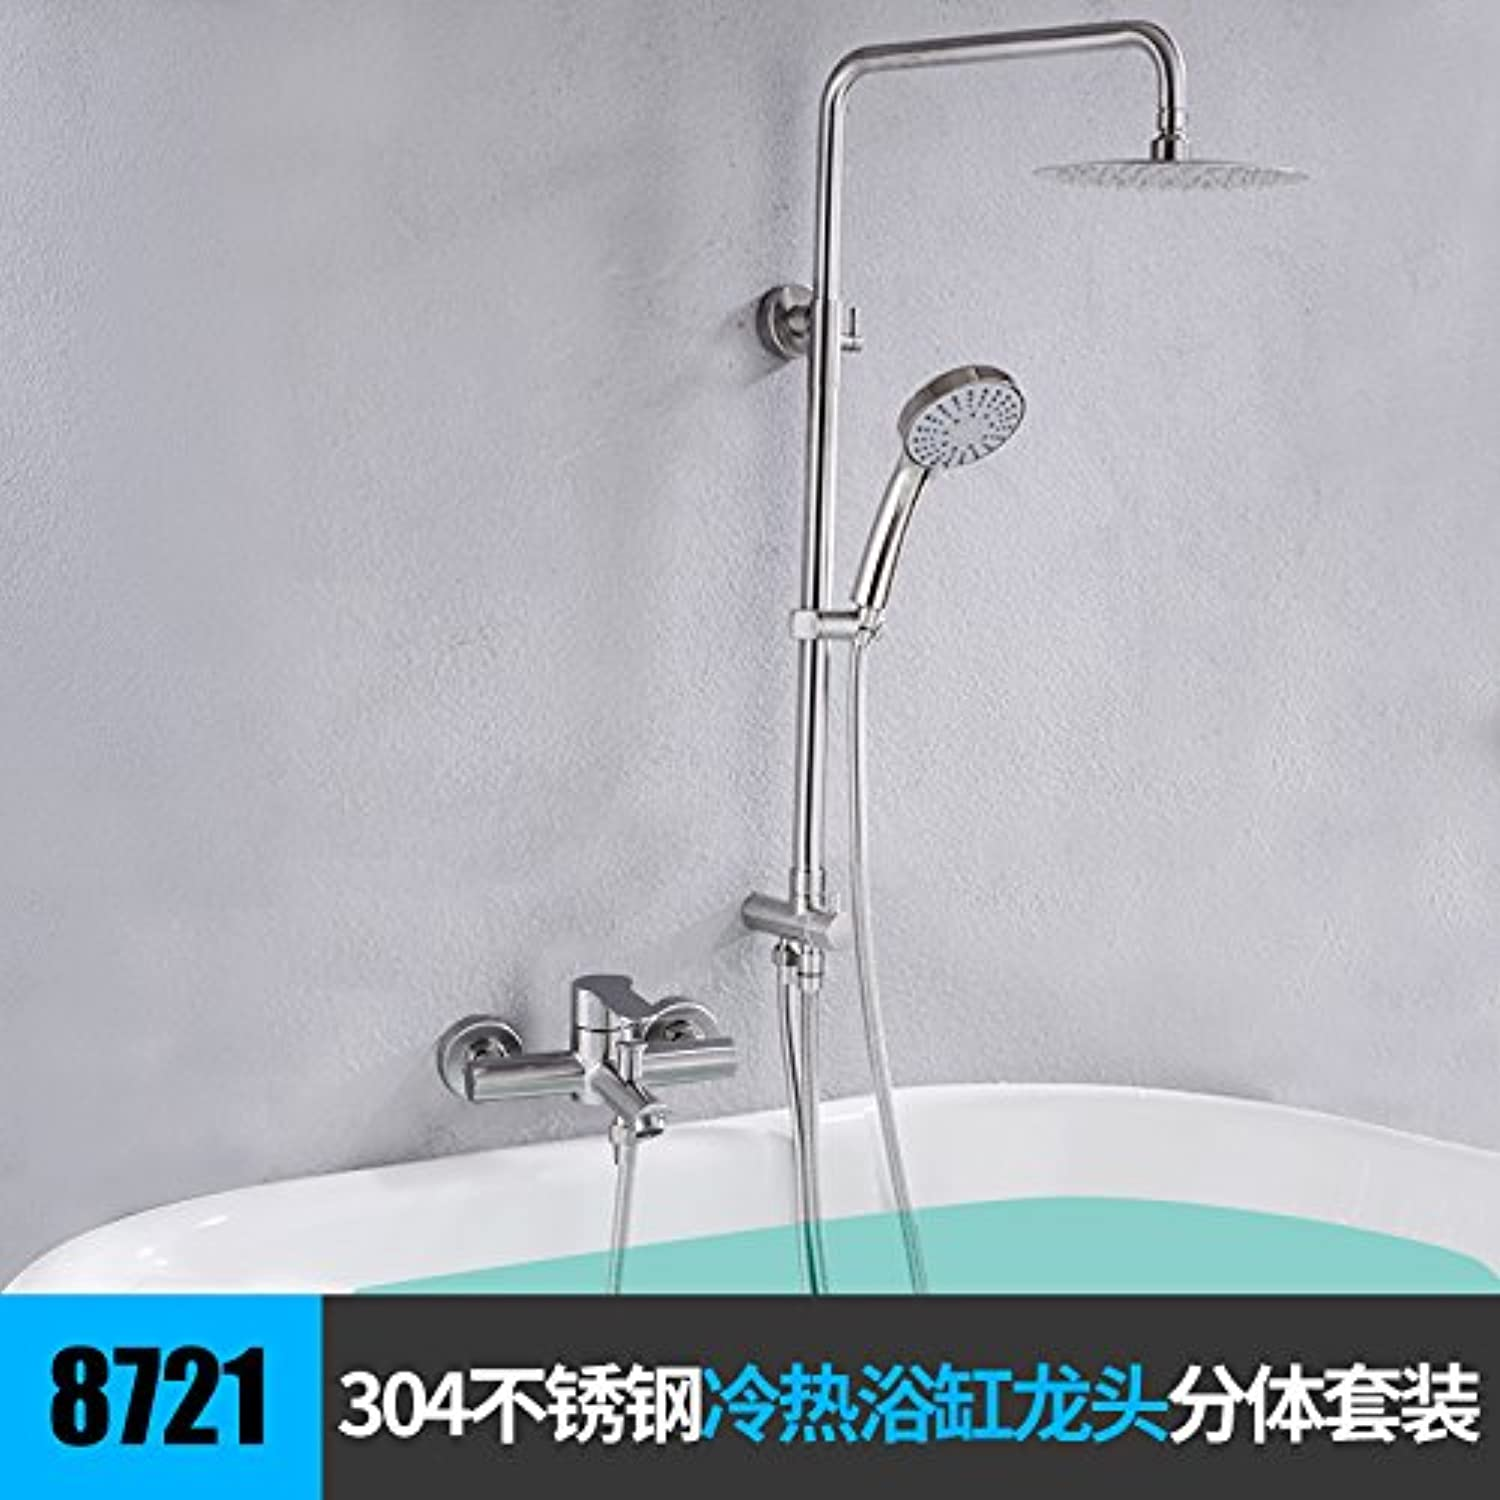 PajCzh Bathroom Fixturesmixing Valve Hot And Cold Bathroom Faucet Thermostatic Solar Shower Shower Bath Tub Faucet Mounted Mixing Valve, Hot And Cold Bath Faucet Split Suit